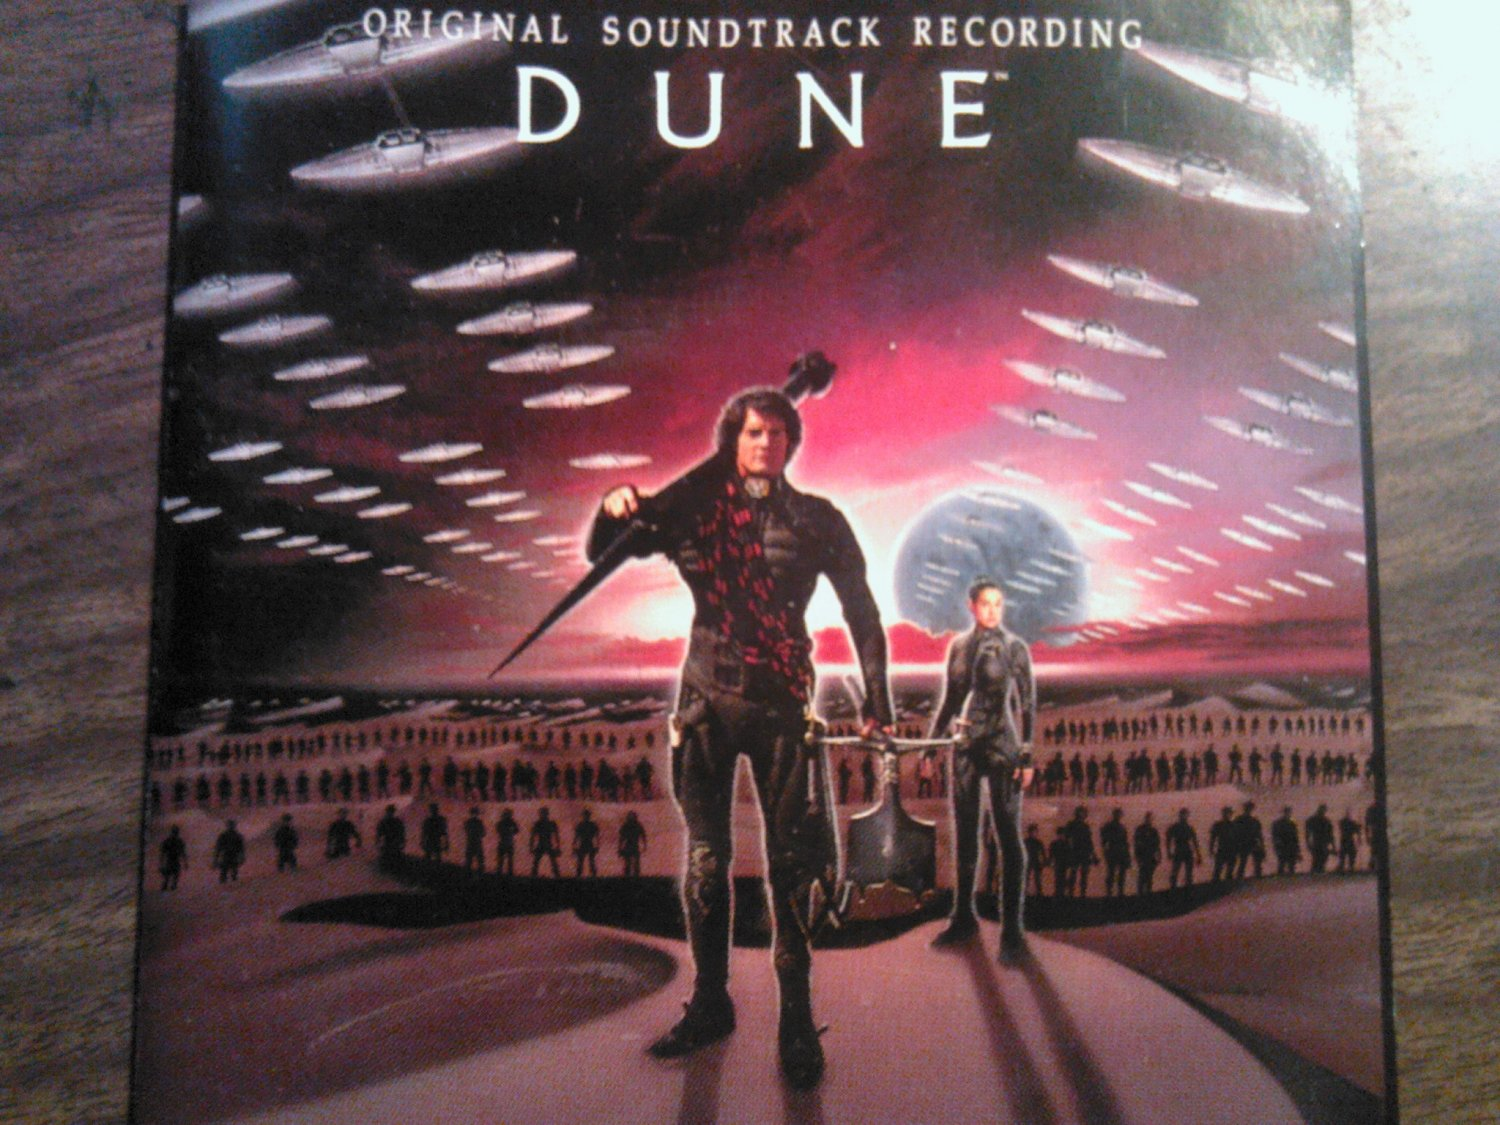 CD DUNE Original Soundtrack Recording movie toto brian eno